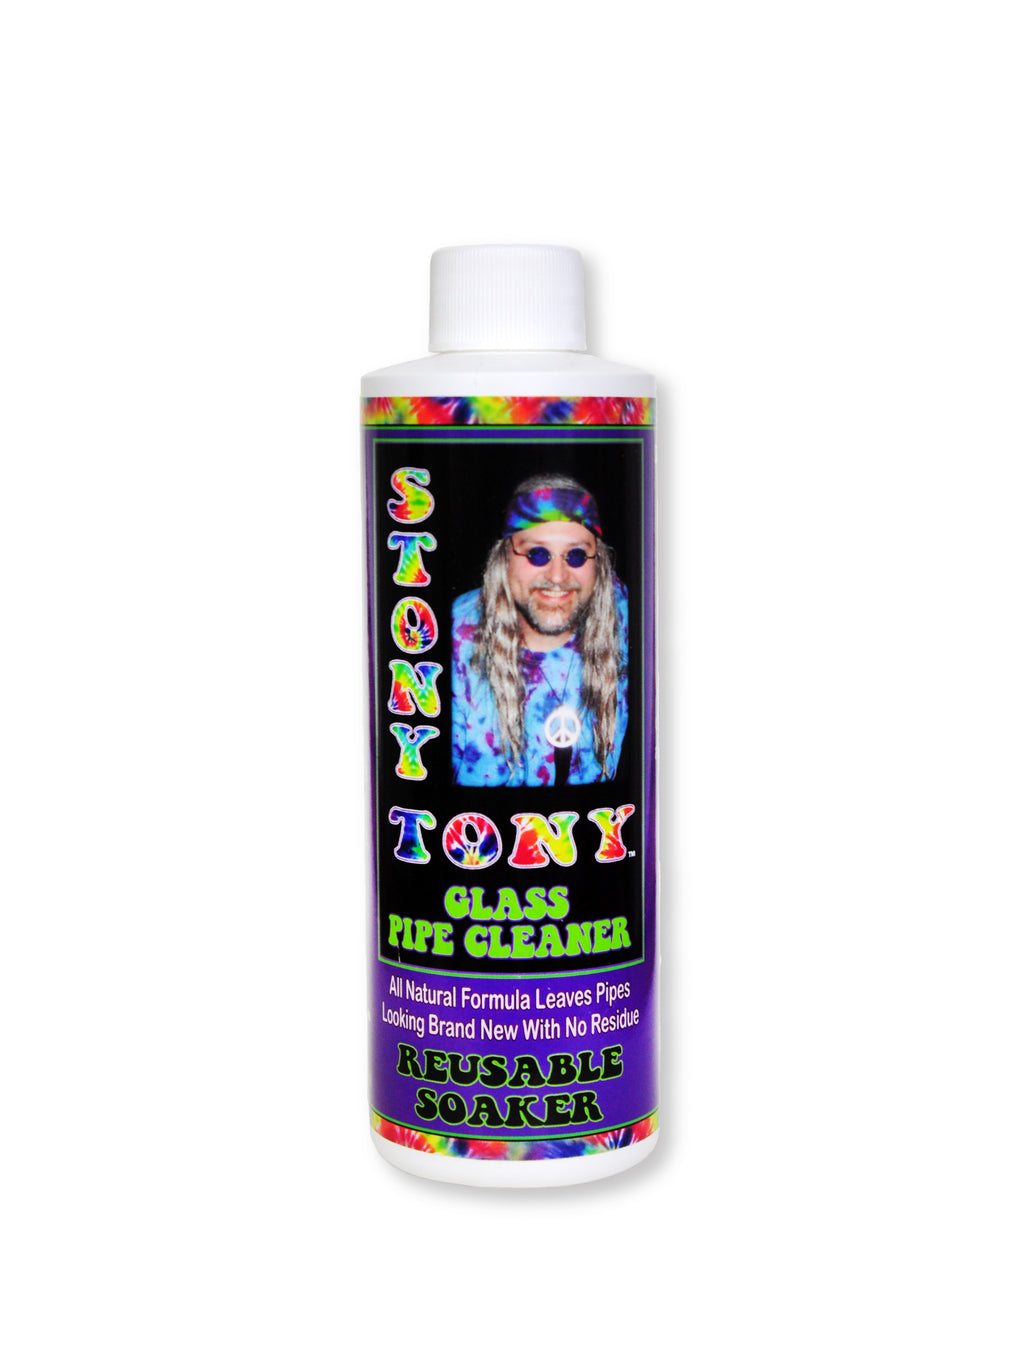 Stony Tony Glass Pipe Cleaner 8oz